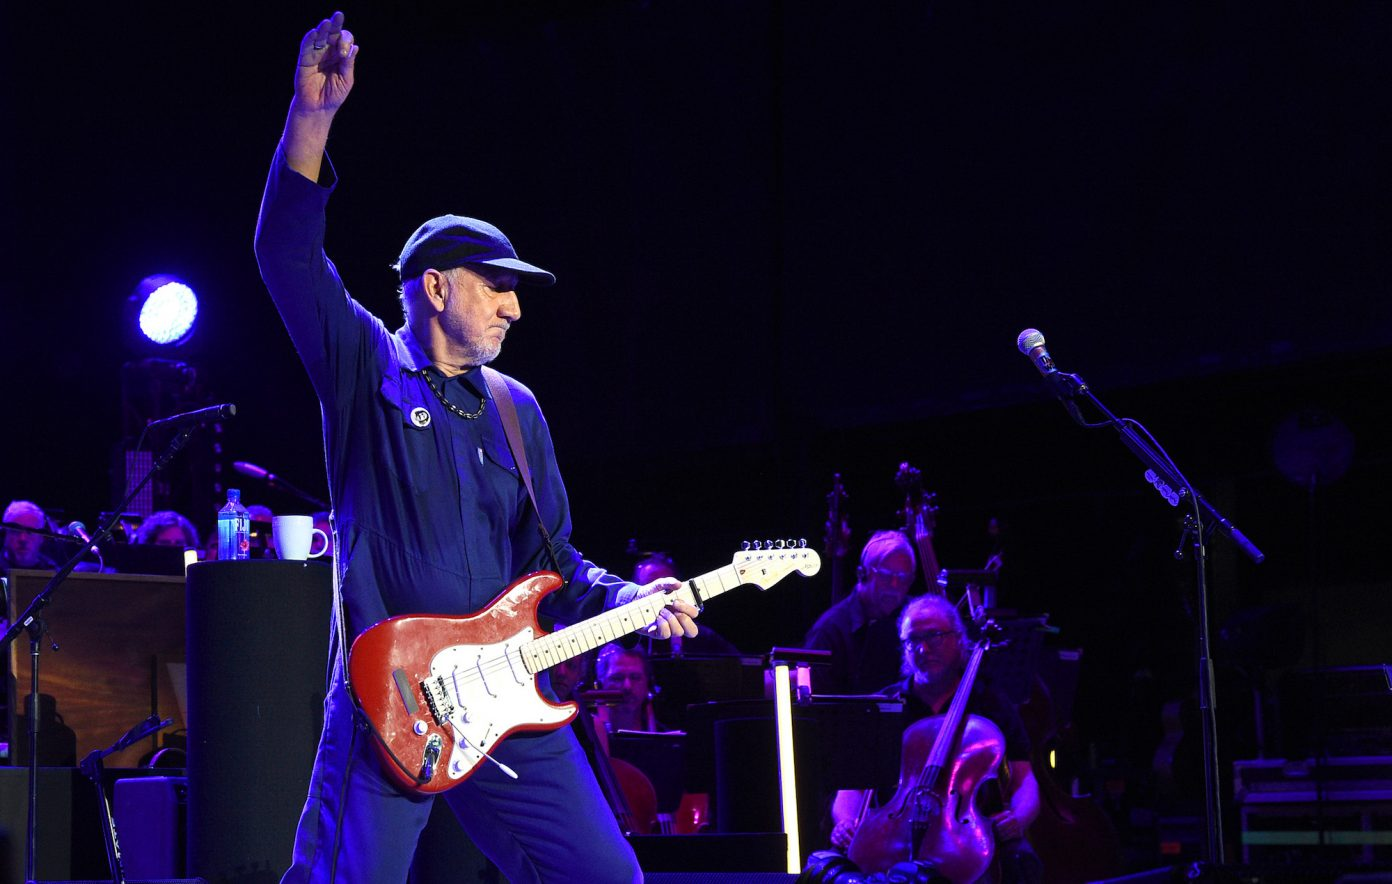 """NME- Pete Townshend teases new The Who album post-lockdown: """"There's pages and pages of draft lyrics"""""""